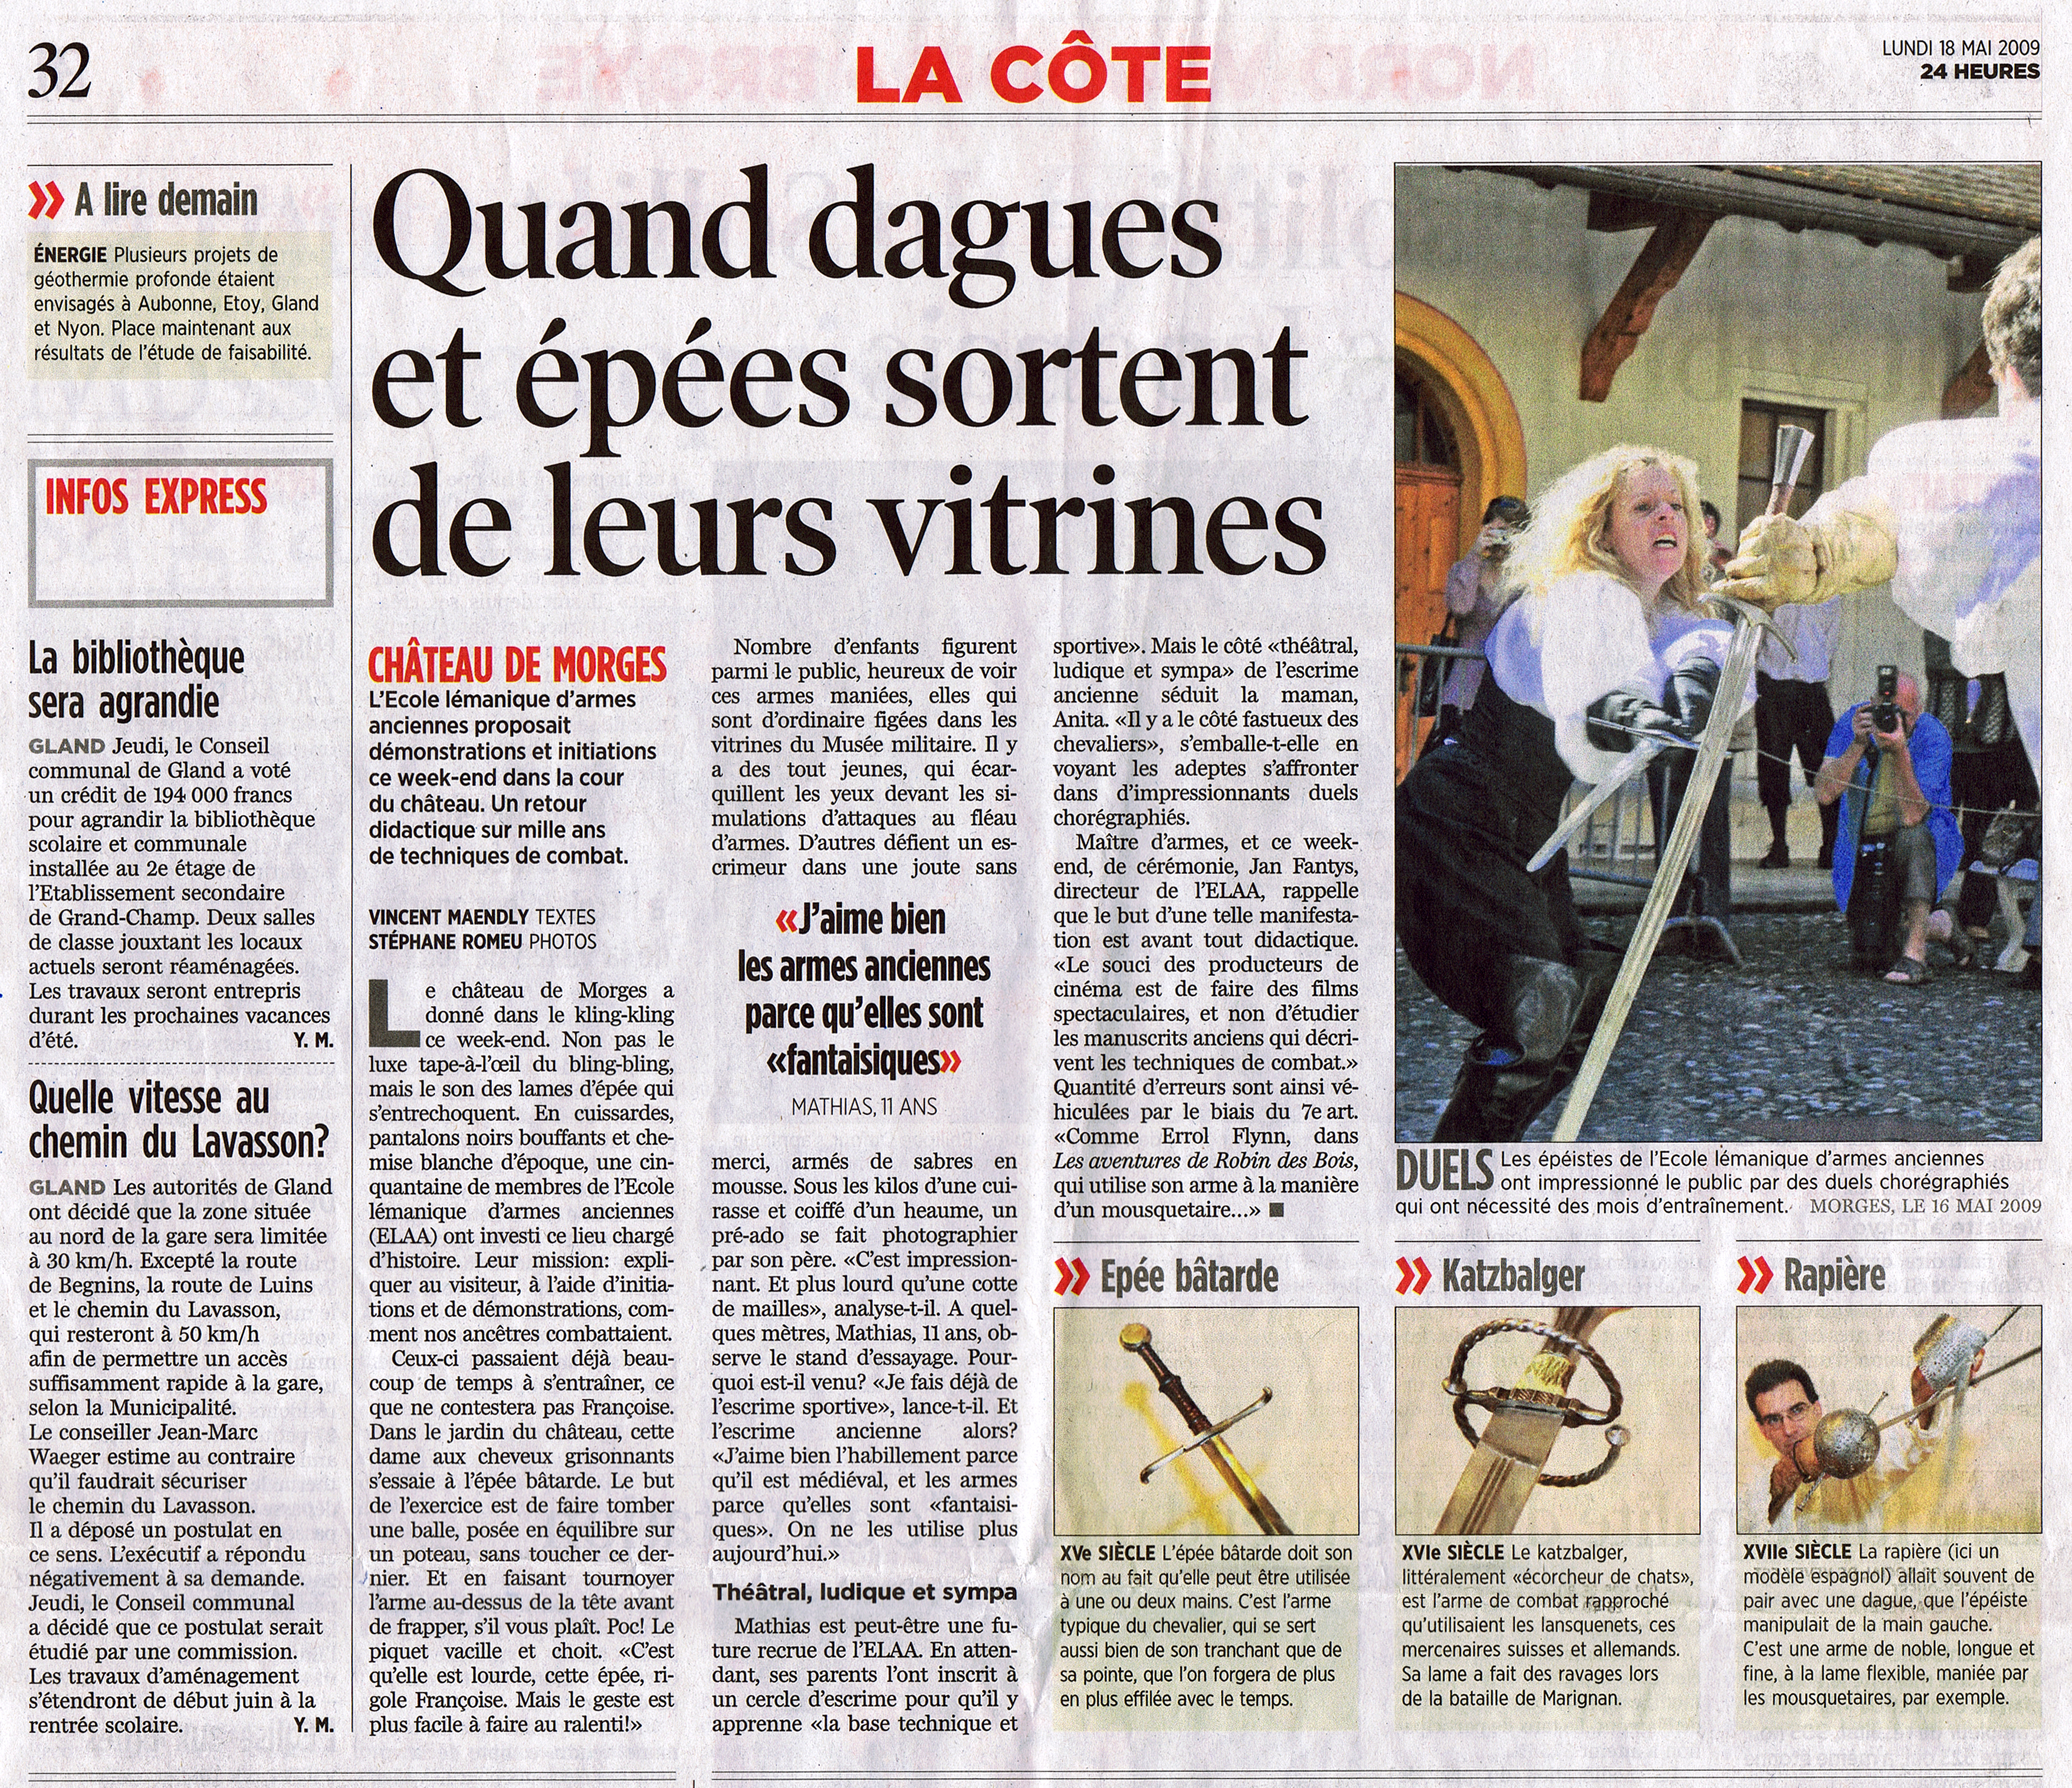 Morges2009-presse-24heures